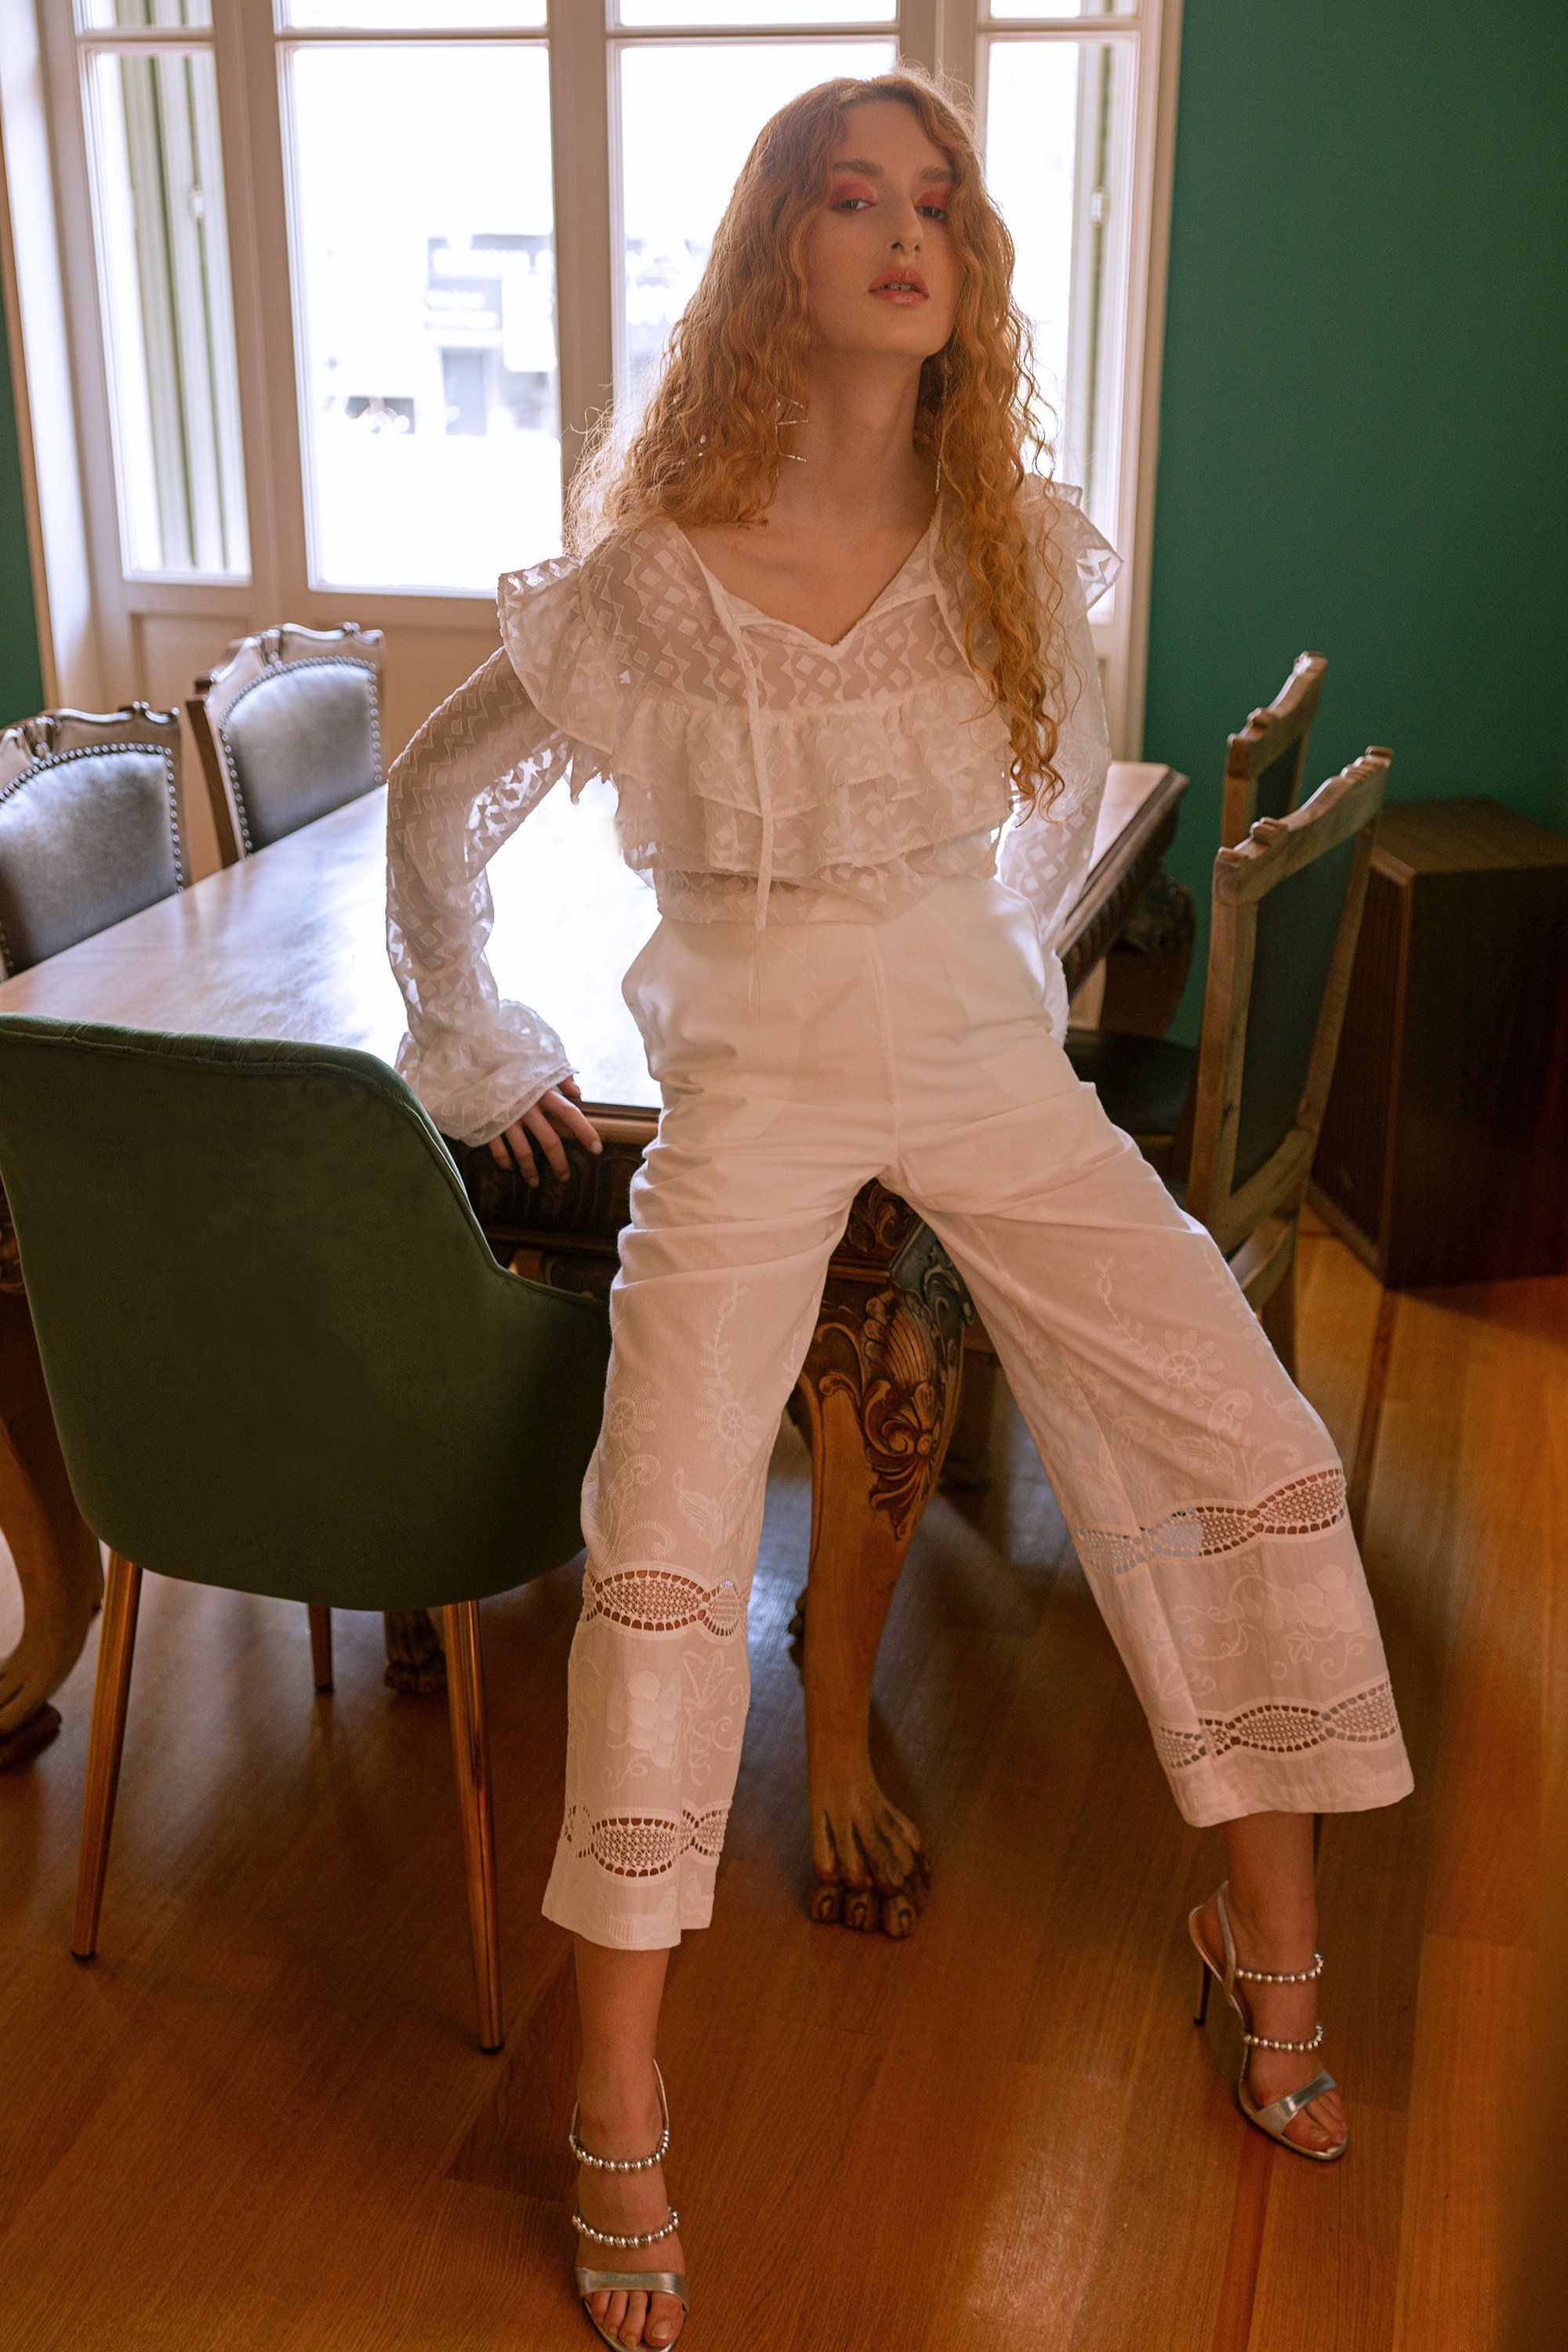 White cropped pants, white summer pants, white summer jupe culottes, lace details pants, jupe culottes with pockets, embroidered white pants